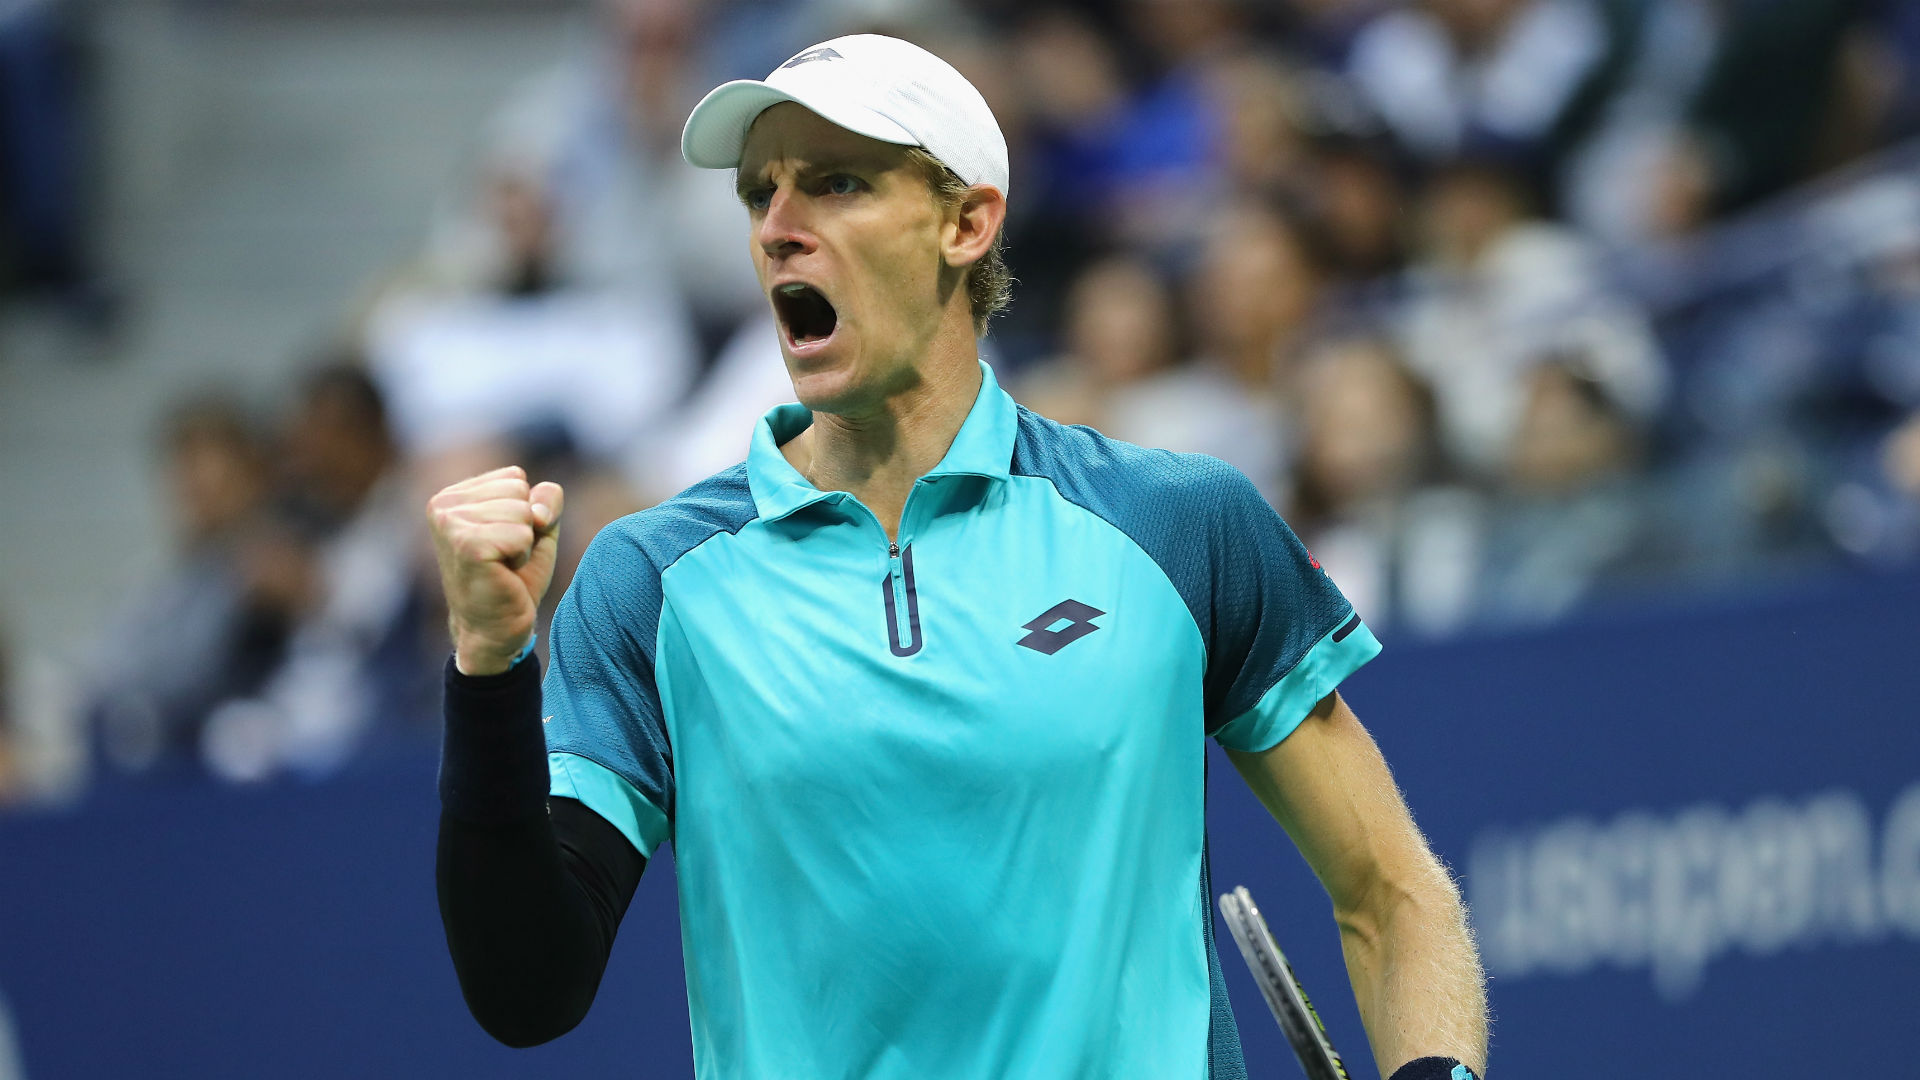 kevin anderson - photo #32